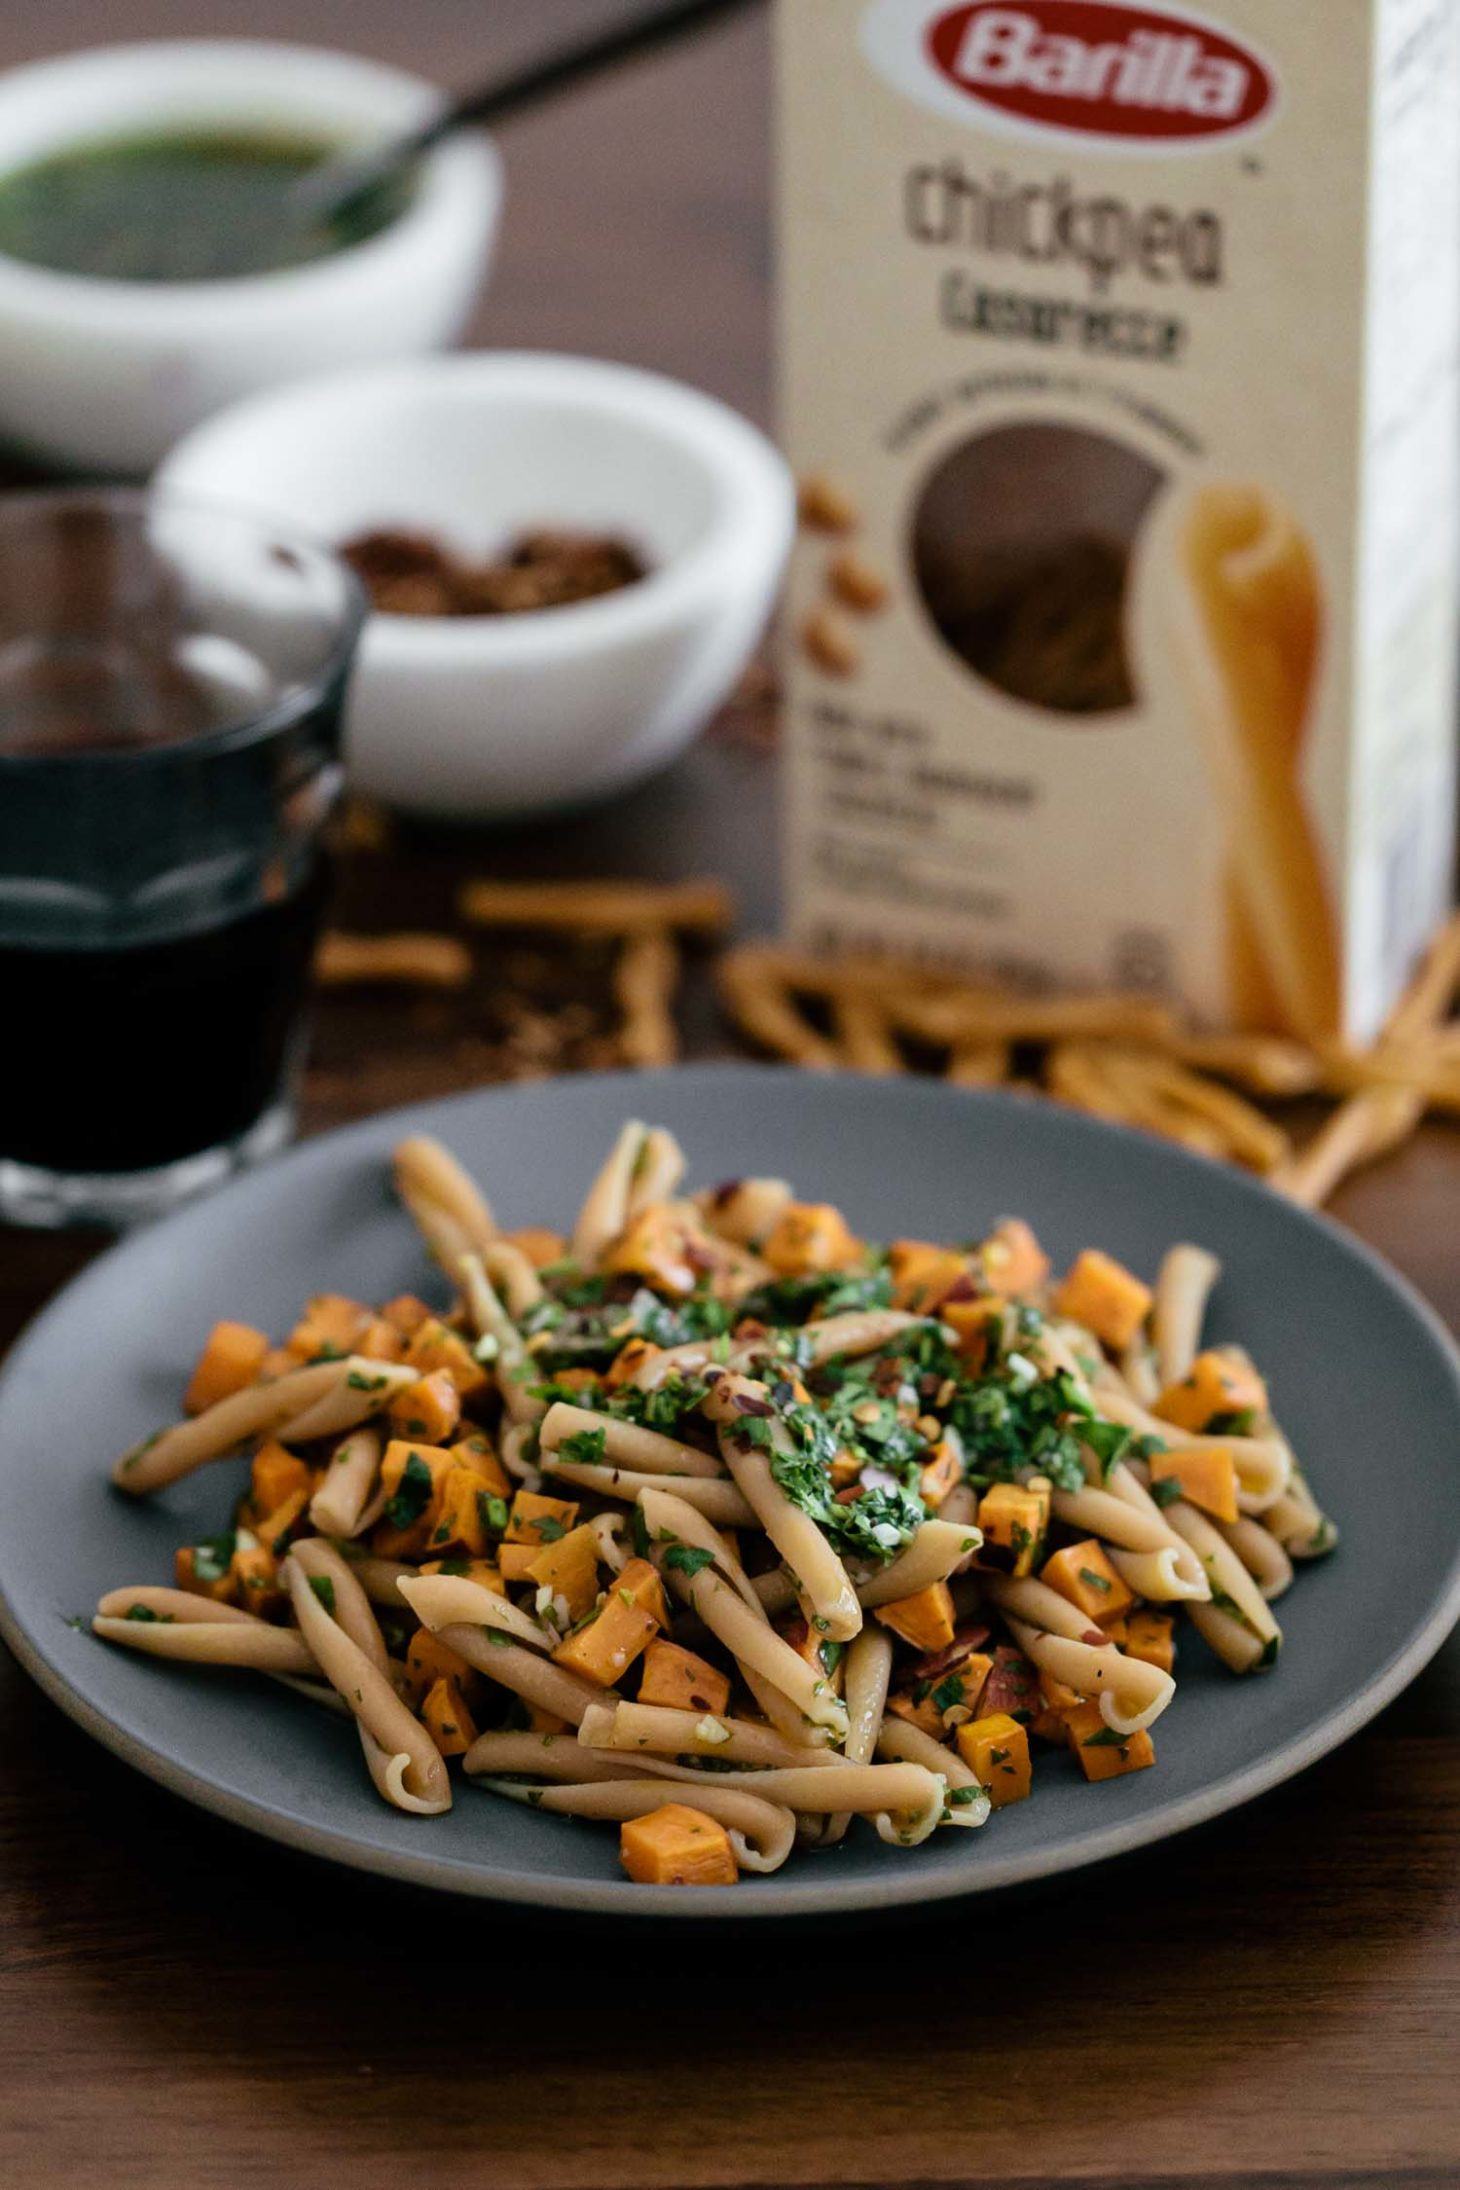 Chickpea Casarecce Pasta with Roasted Sweet Potatoes and Chimichurri